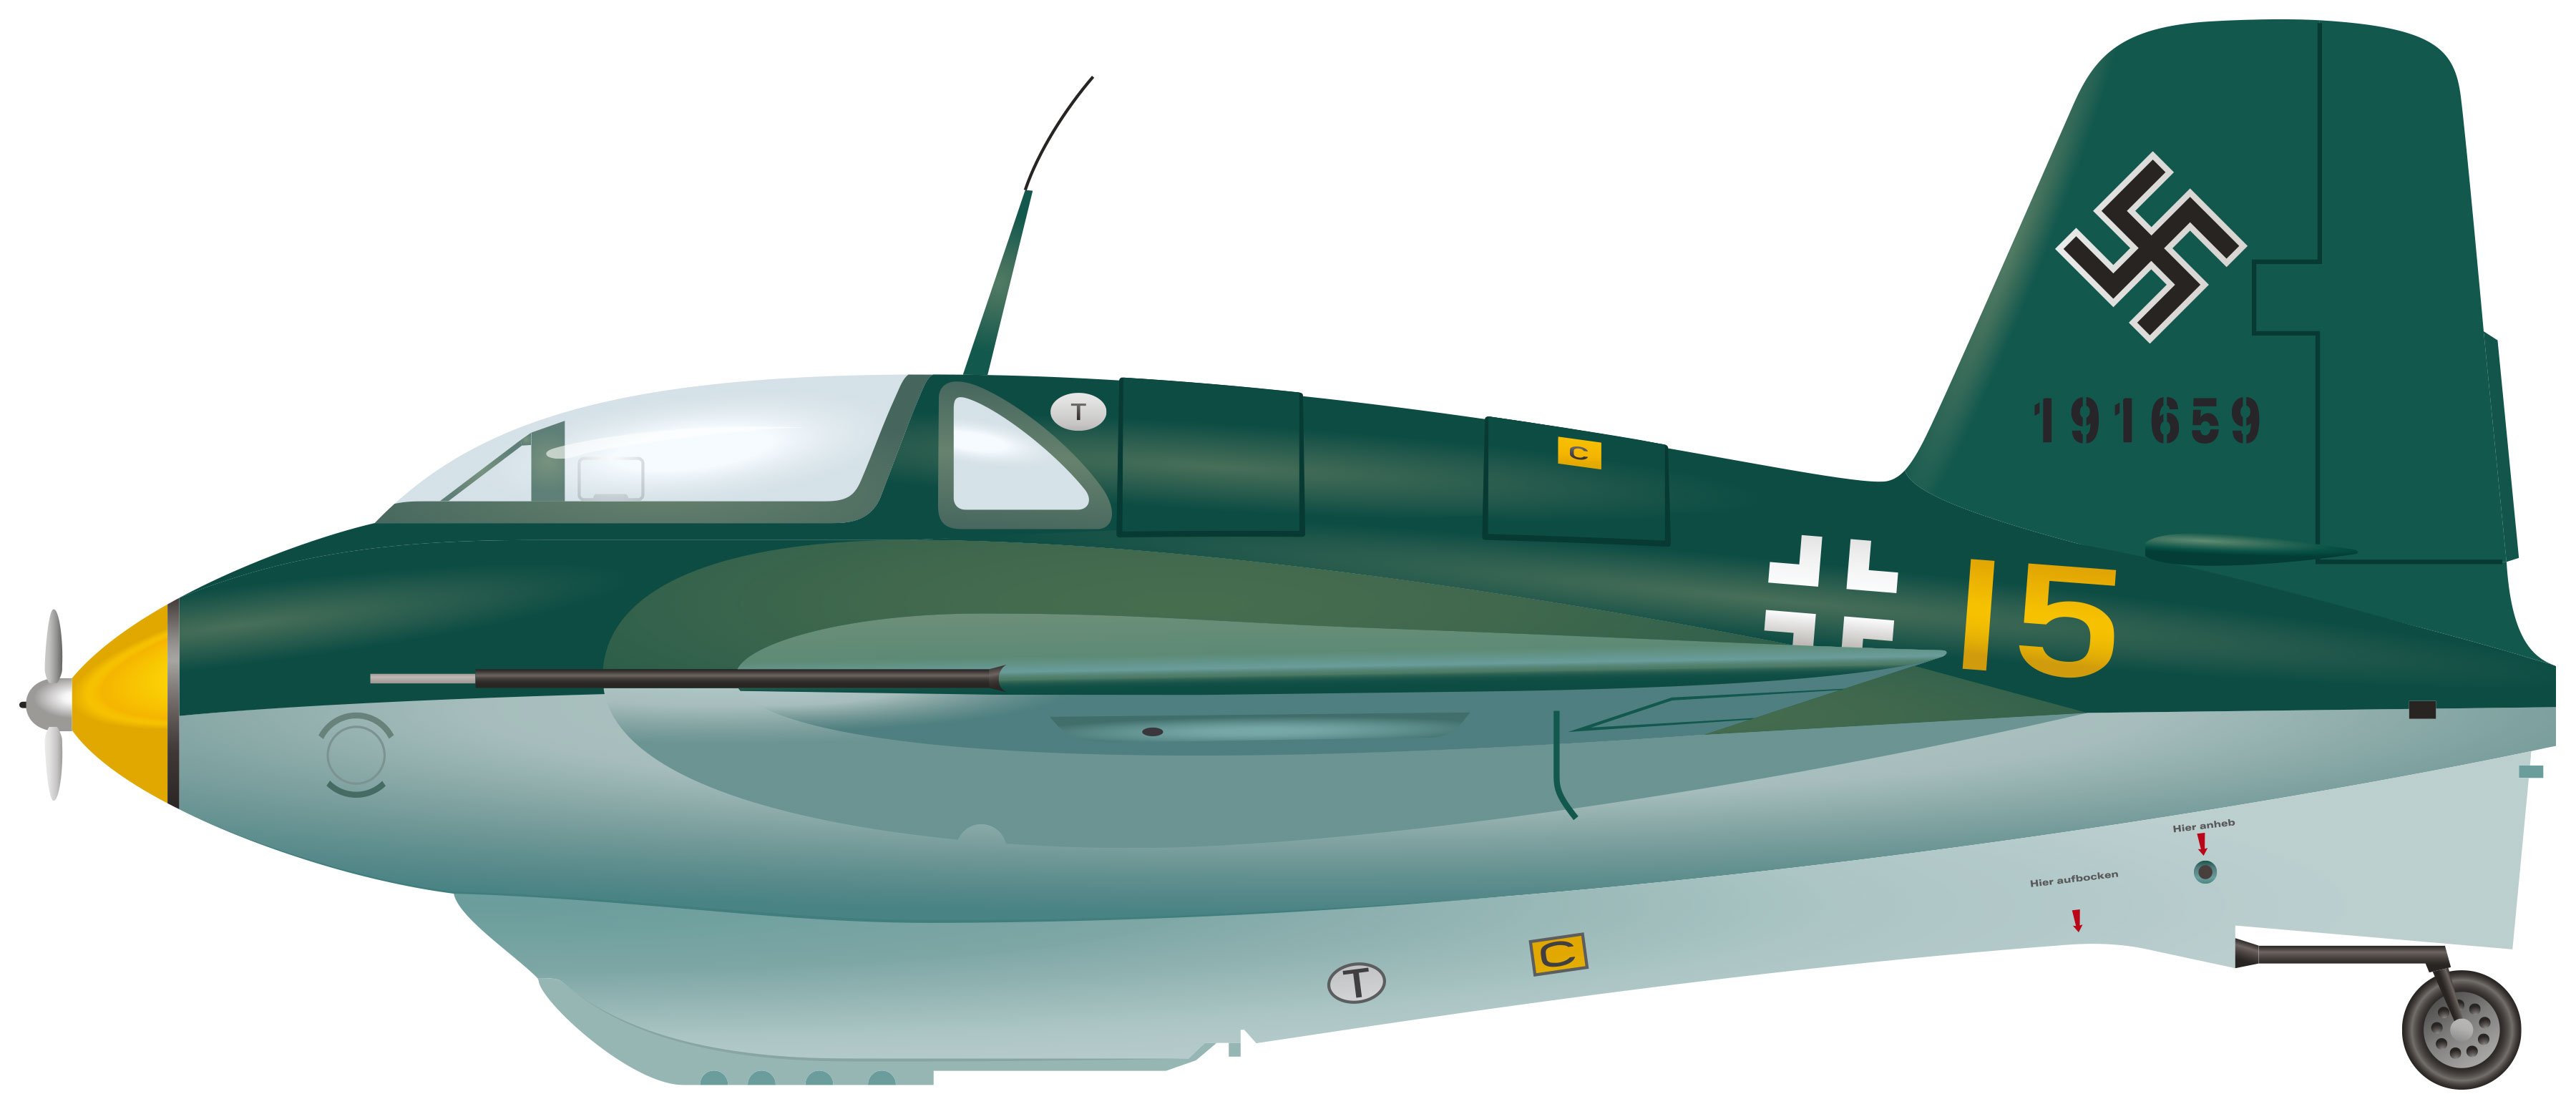 Illustration of the Messerschmitt Komet